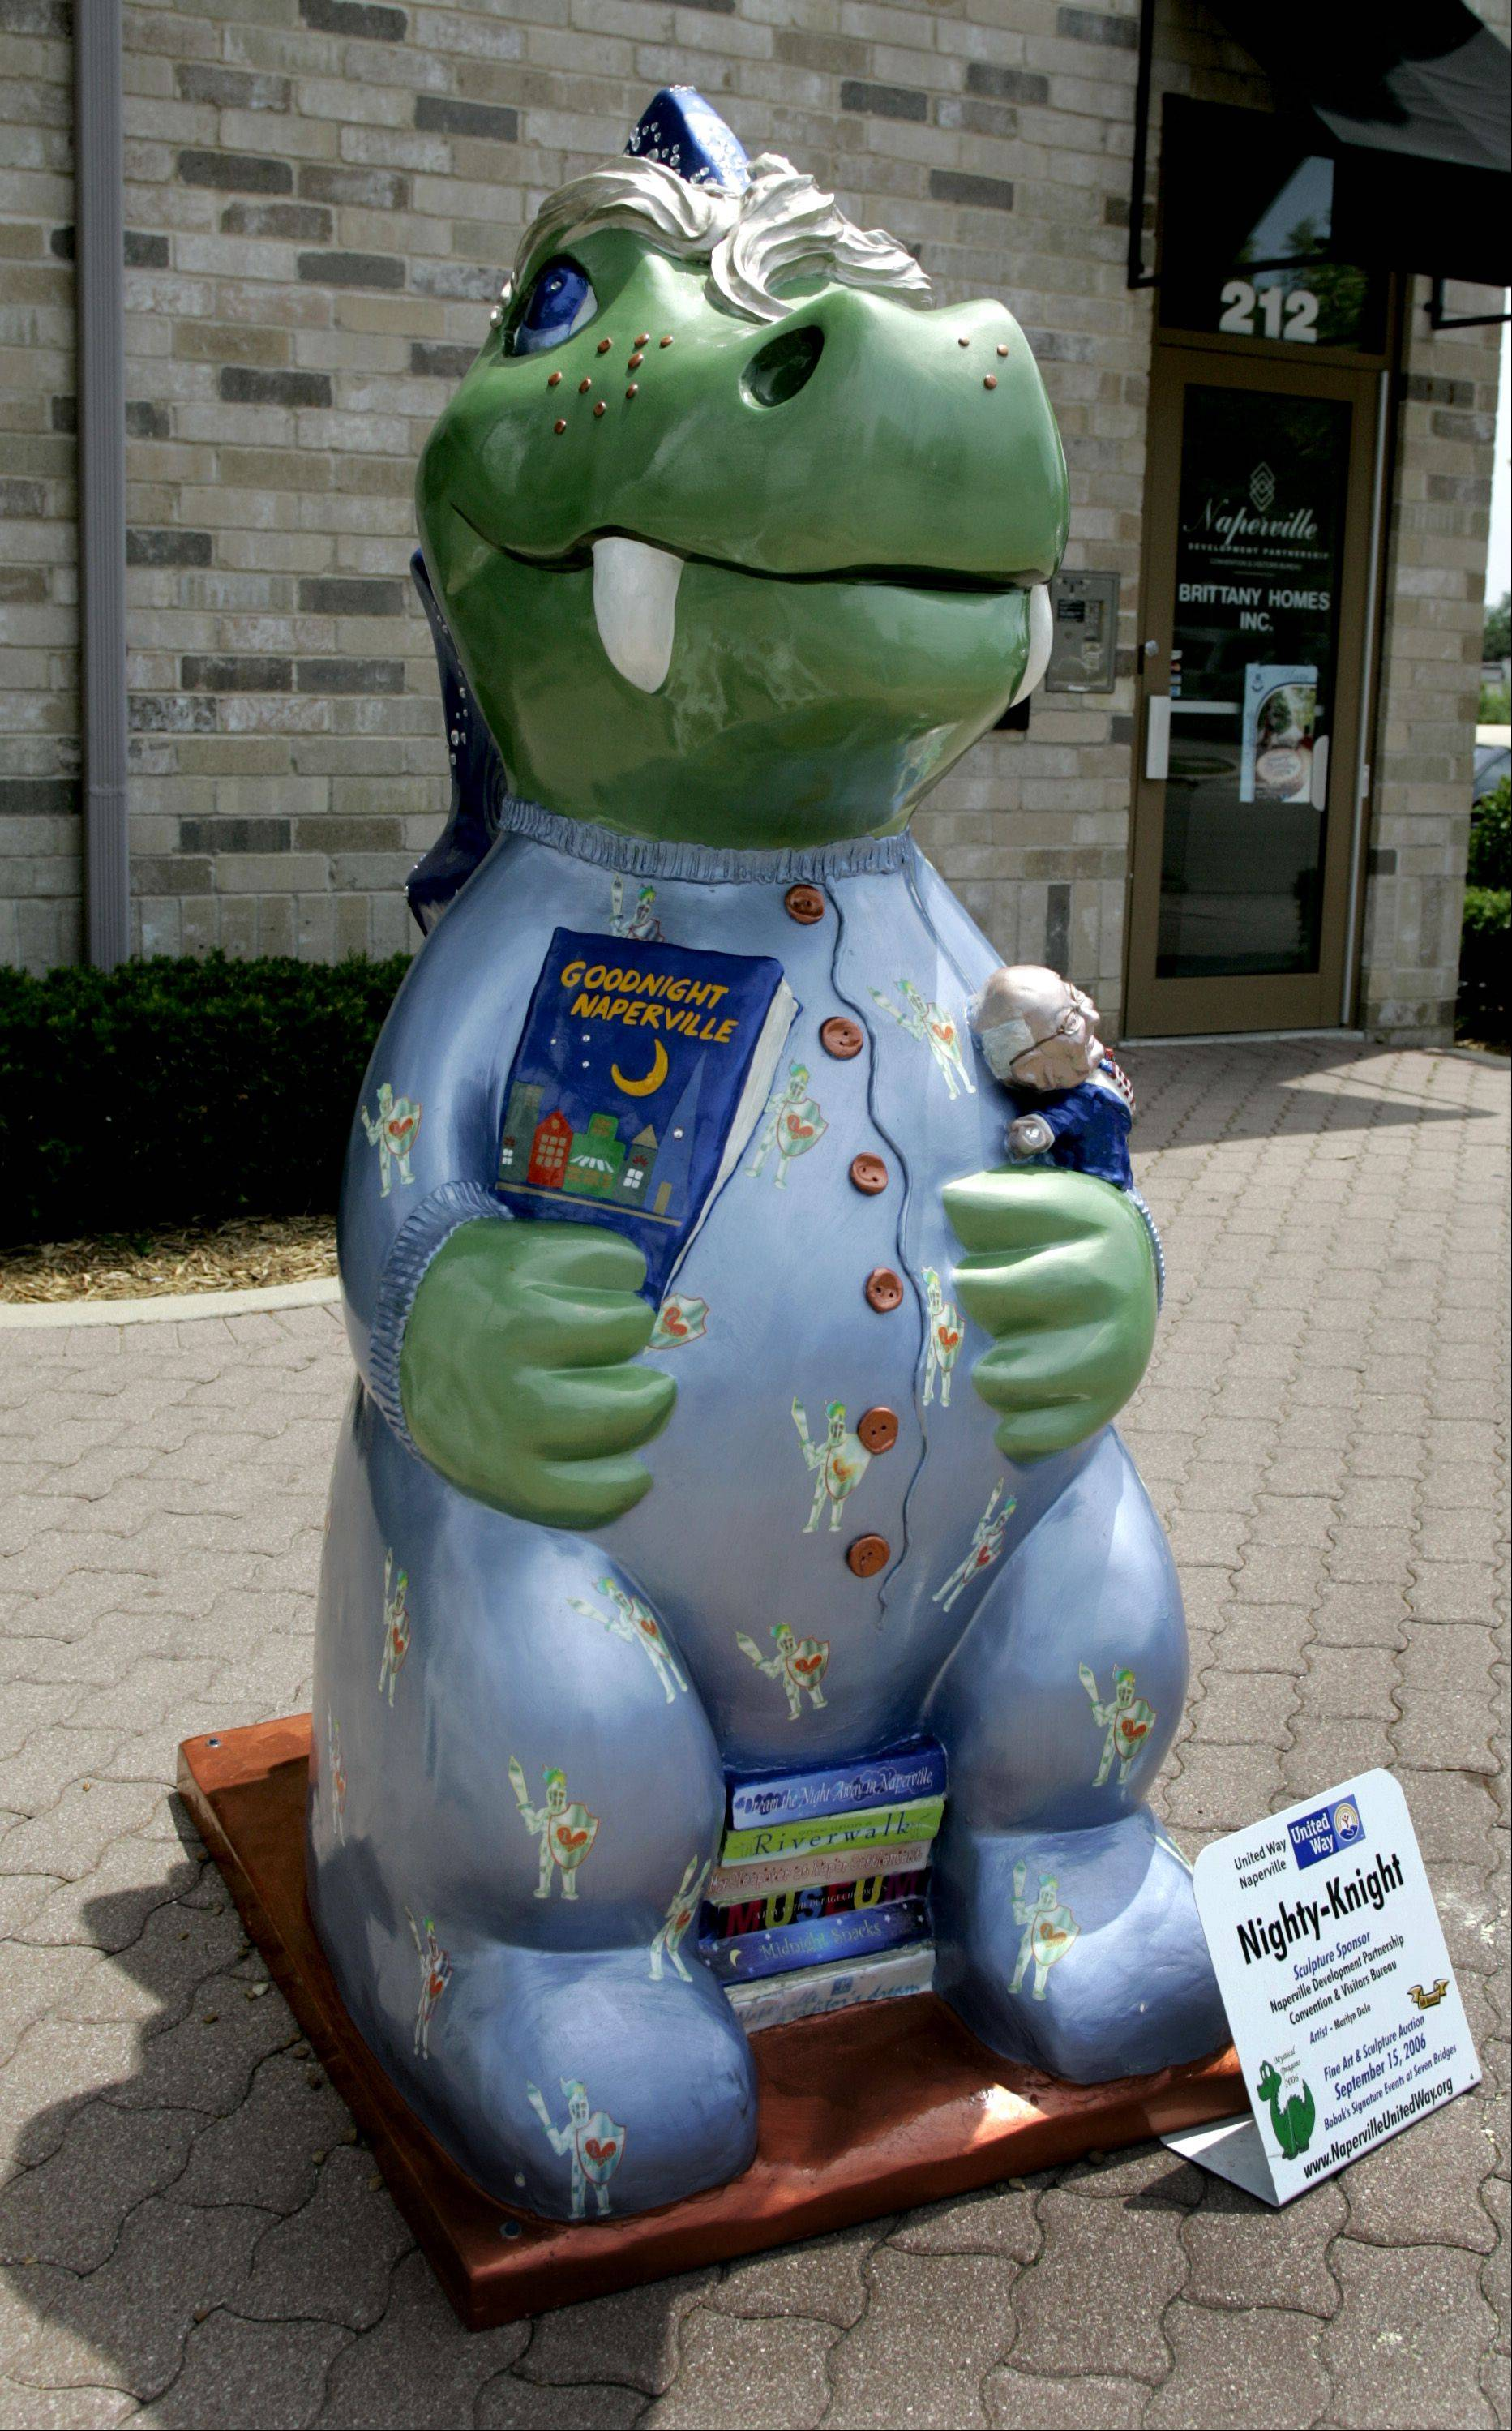 "Naperville Mayor George Pradel said the dragon statue in his front yard was removed early Saturday morning and thrown over a bridge toward the railroad tracks at Columbia Avenue and Plank Road. The dragon, called ""Nighty-Knight"" by artist Marilyn Dale, was auctioned in 2006 as part of a public art fundraiser for the Naperville United Way. ""It was kind of personal for me,"" Pradel said about the dragon, which carries a miniature statuette of the mayor himself in its left arm and a book called ""Goodnight Naperville"" in its right."